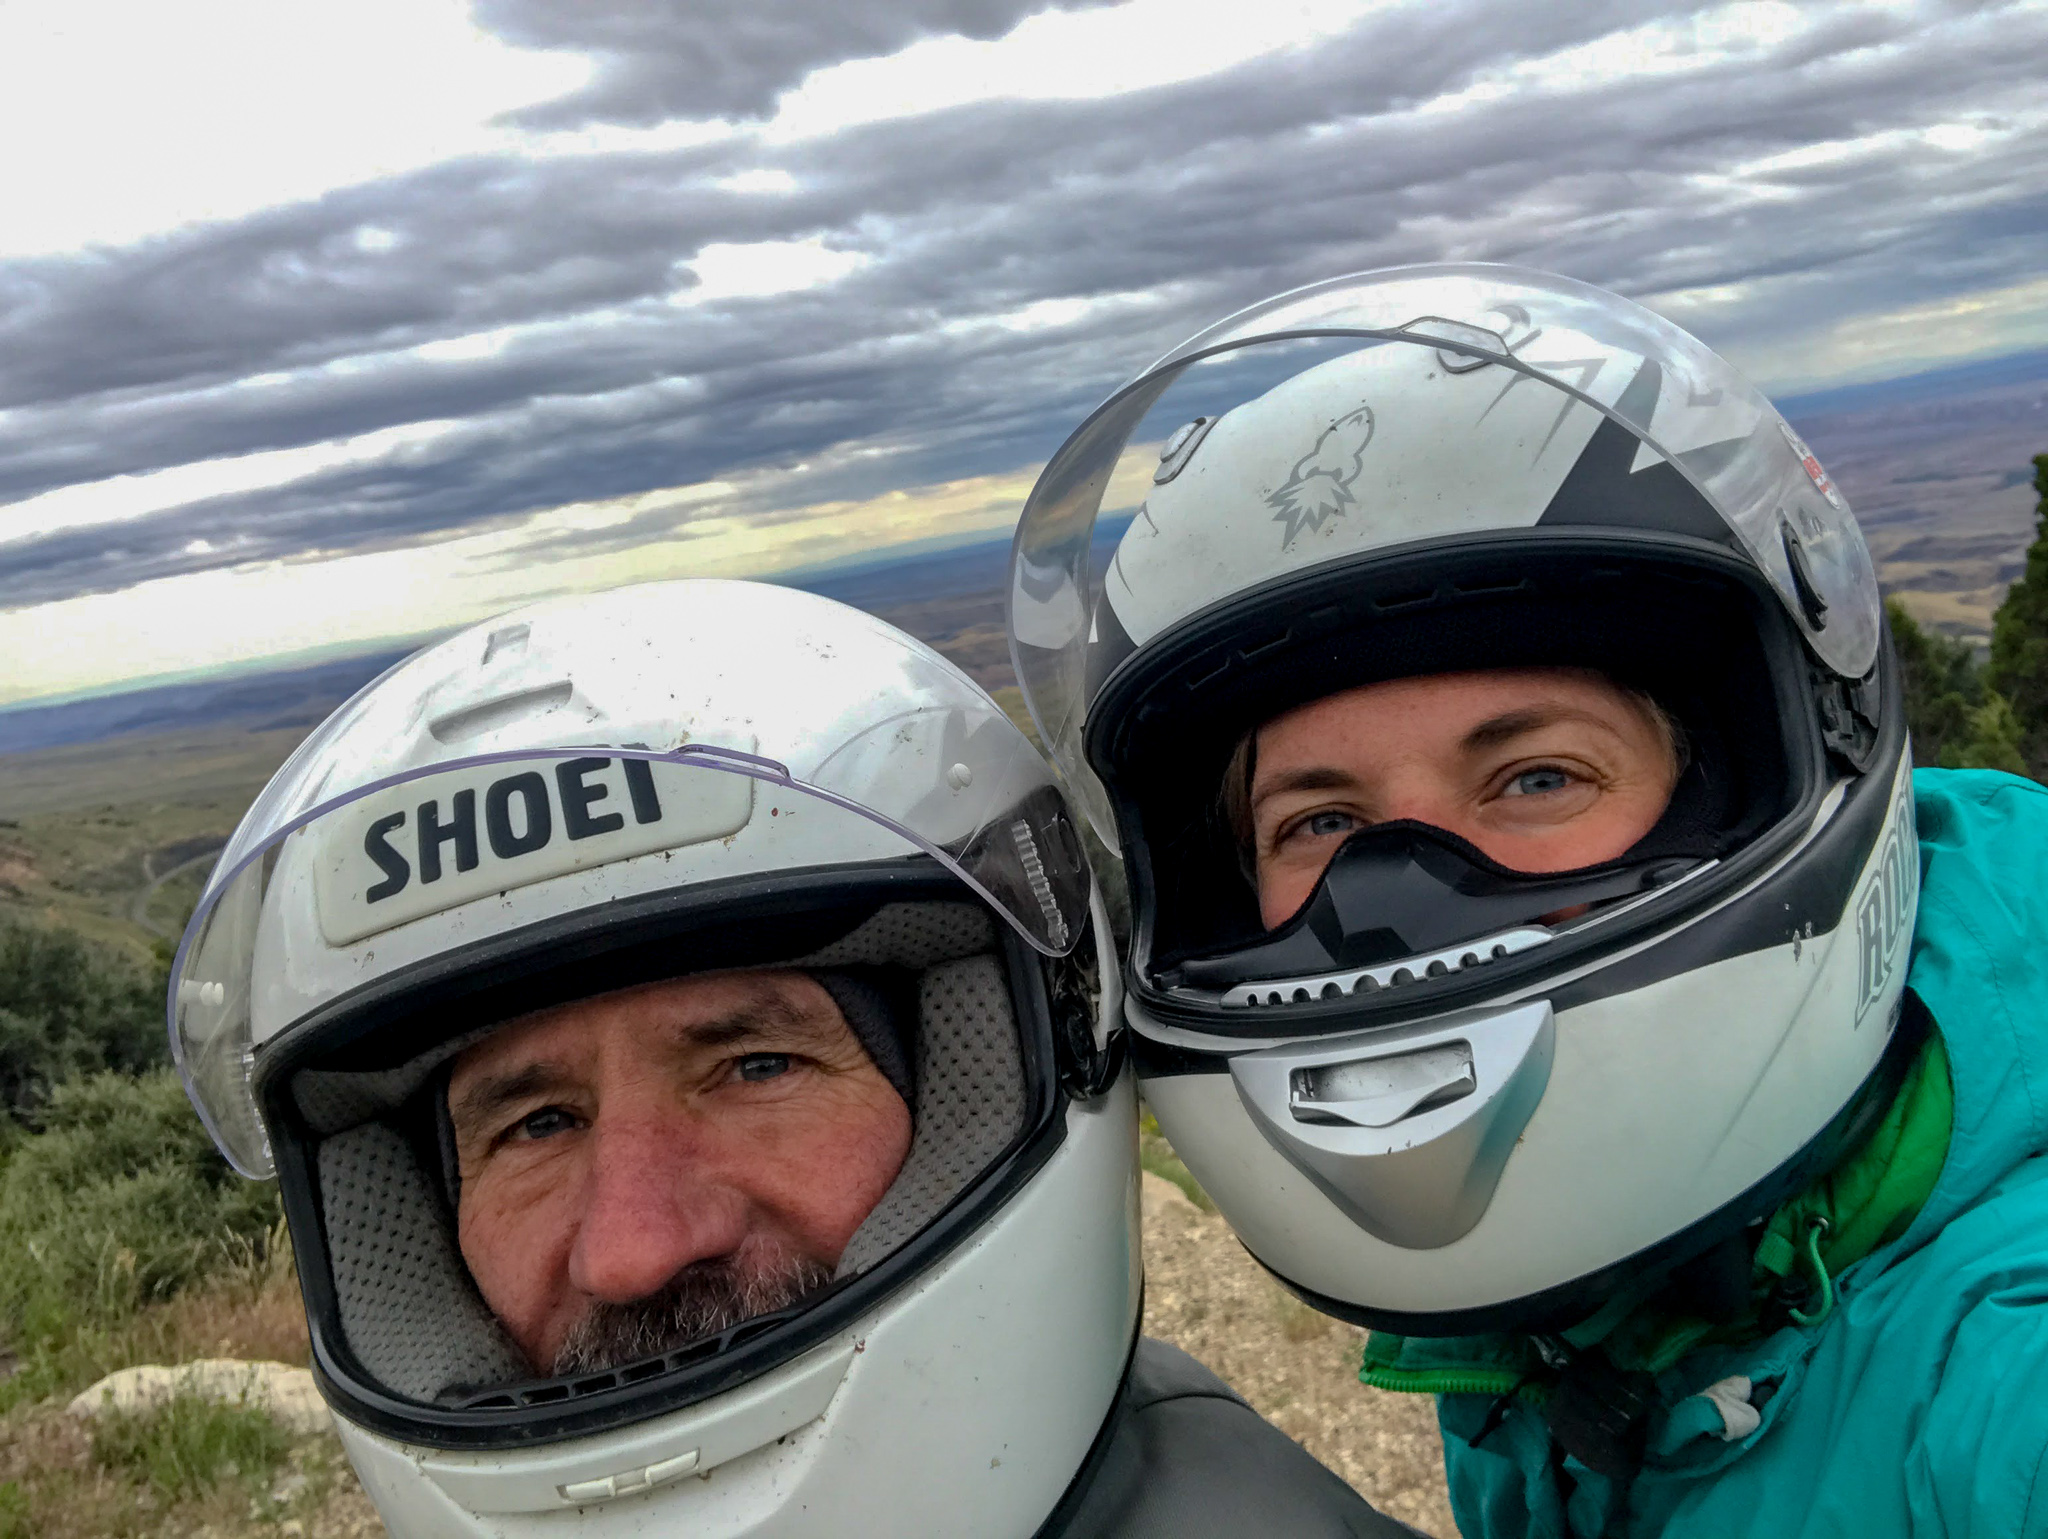 Father and Daughter motorcycle trip